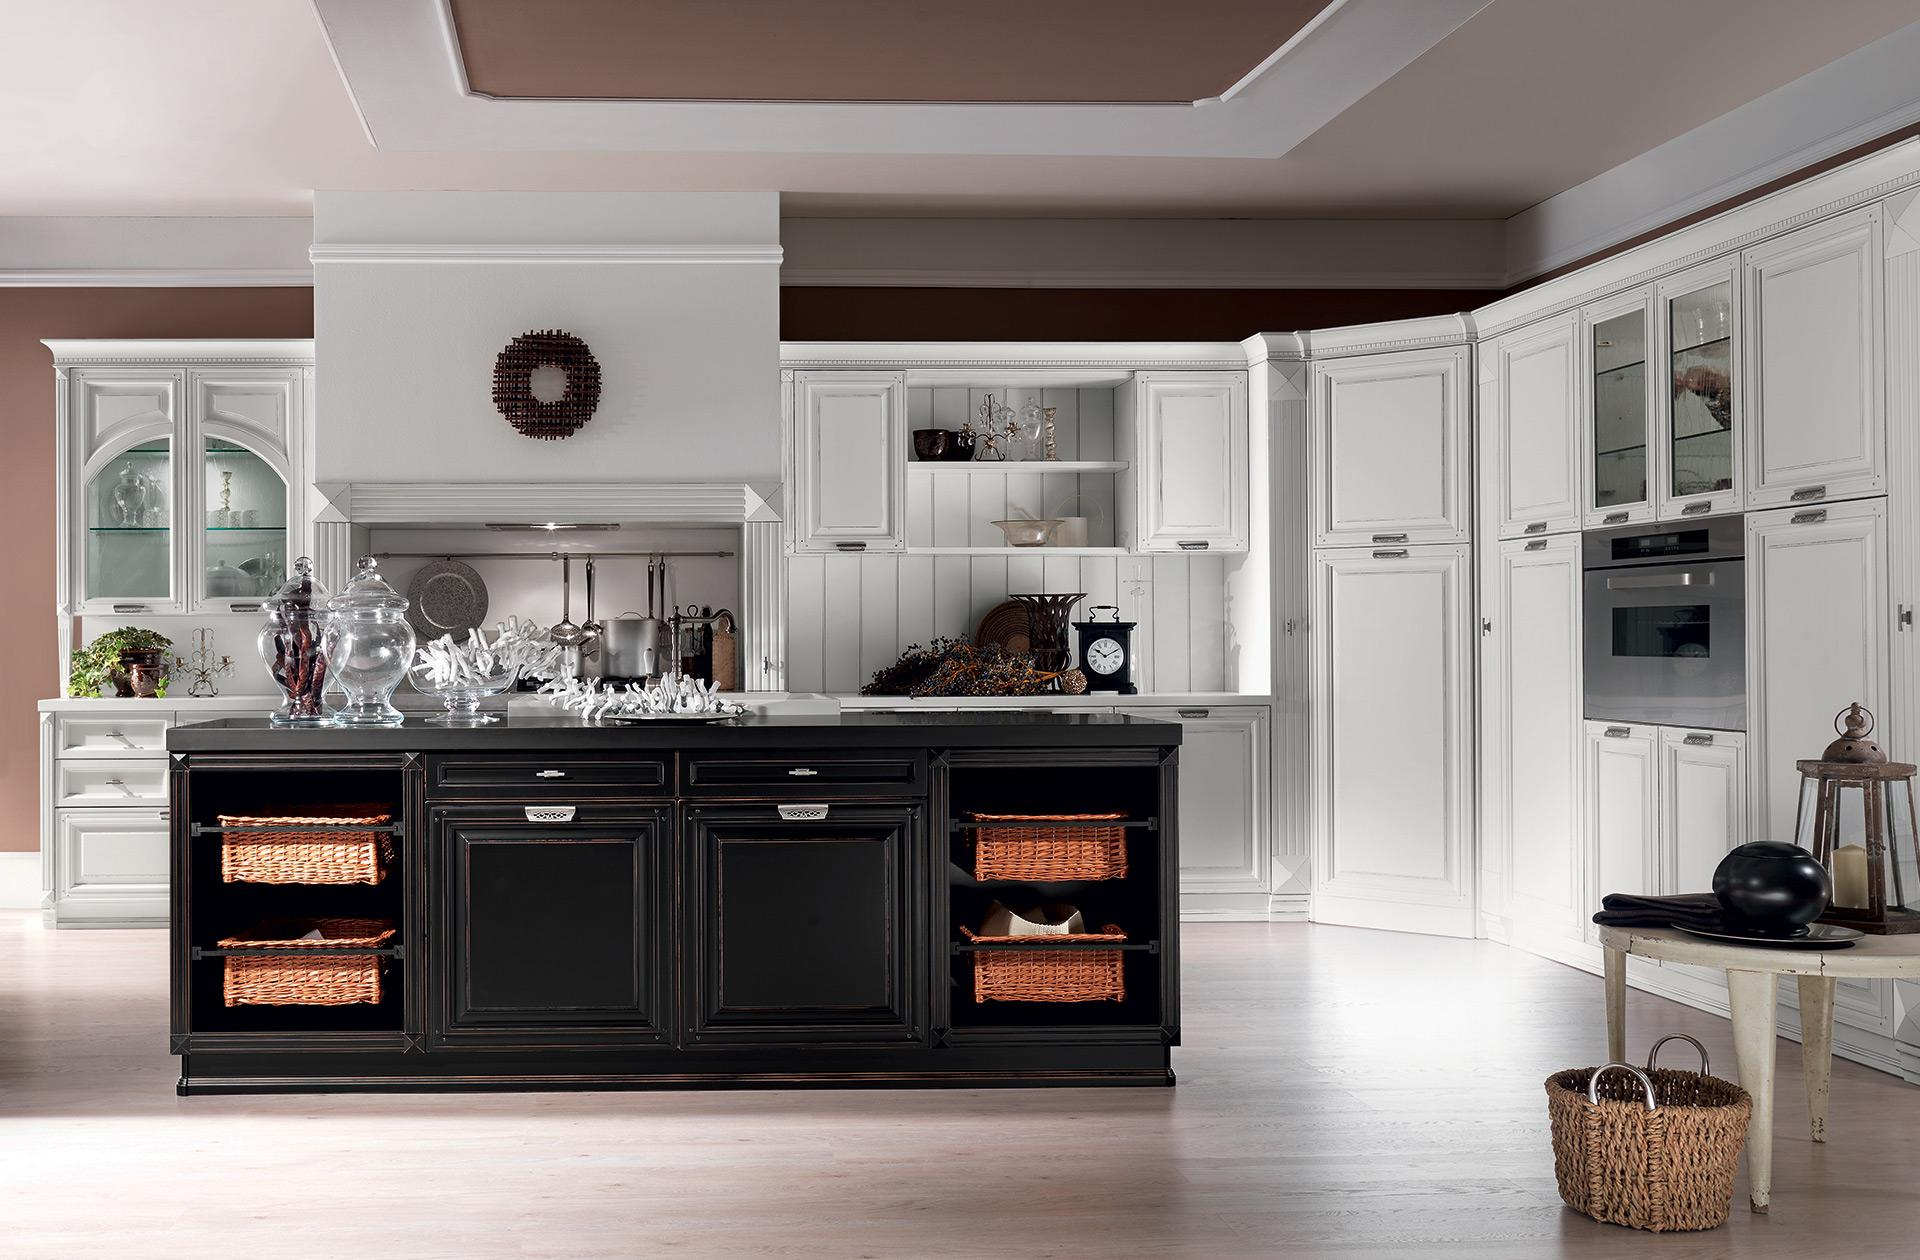 Beautiful Cucina All Inglese Pictures - bery.us - bery.us